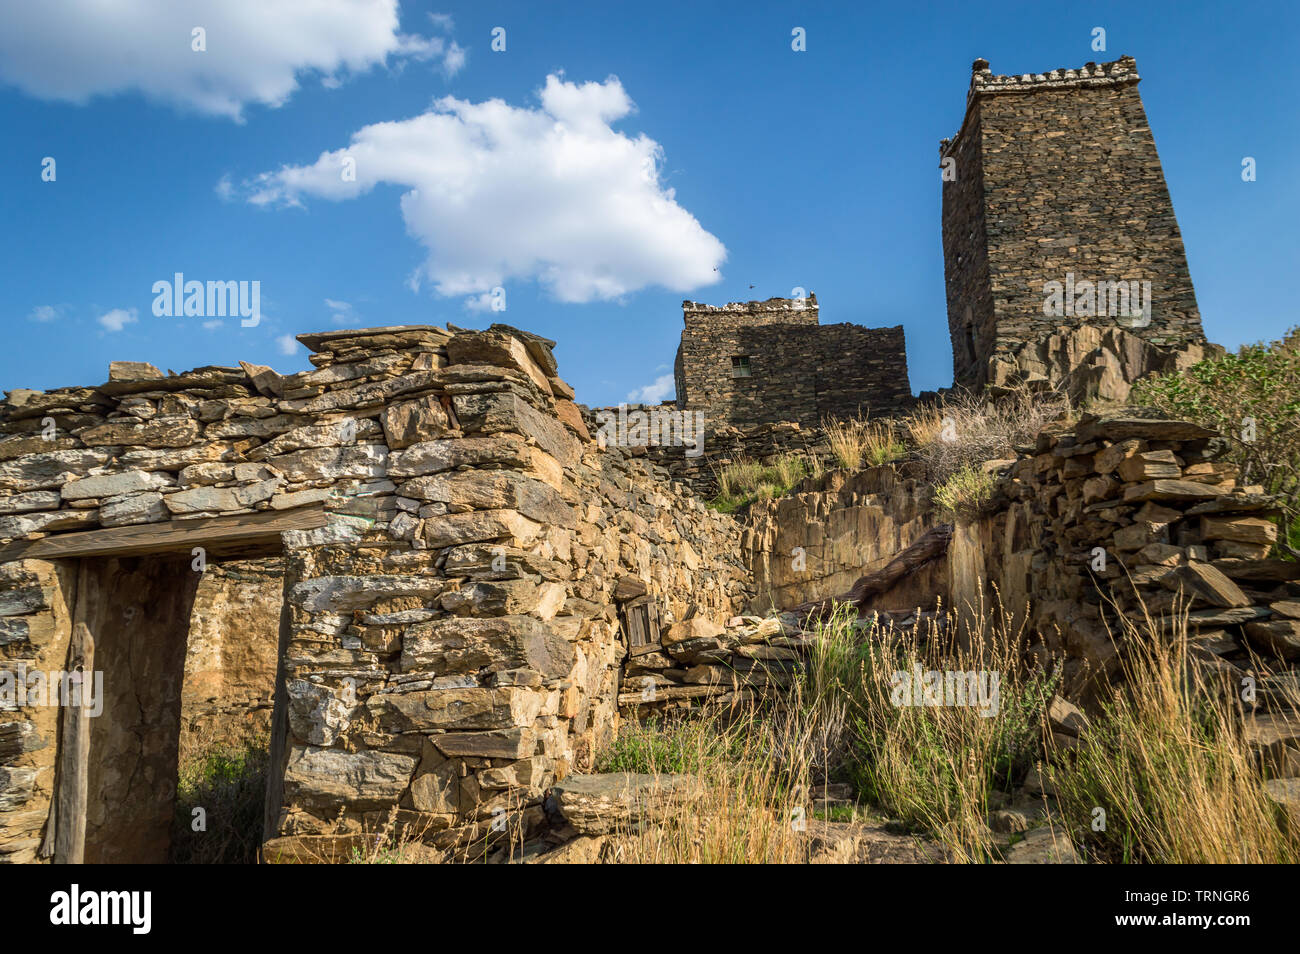 Castle of old Arabian civilization and history situated at Saudi Arabia - Stock Image